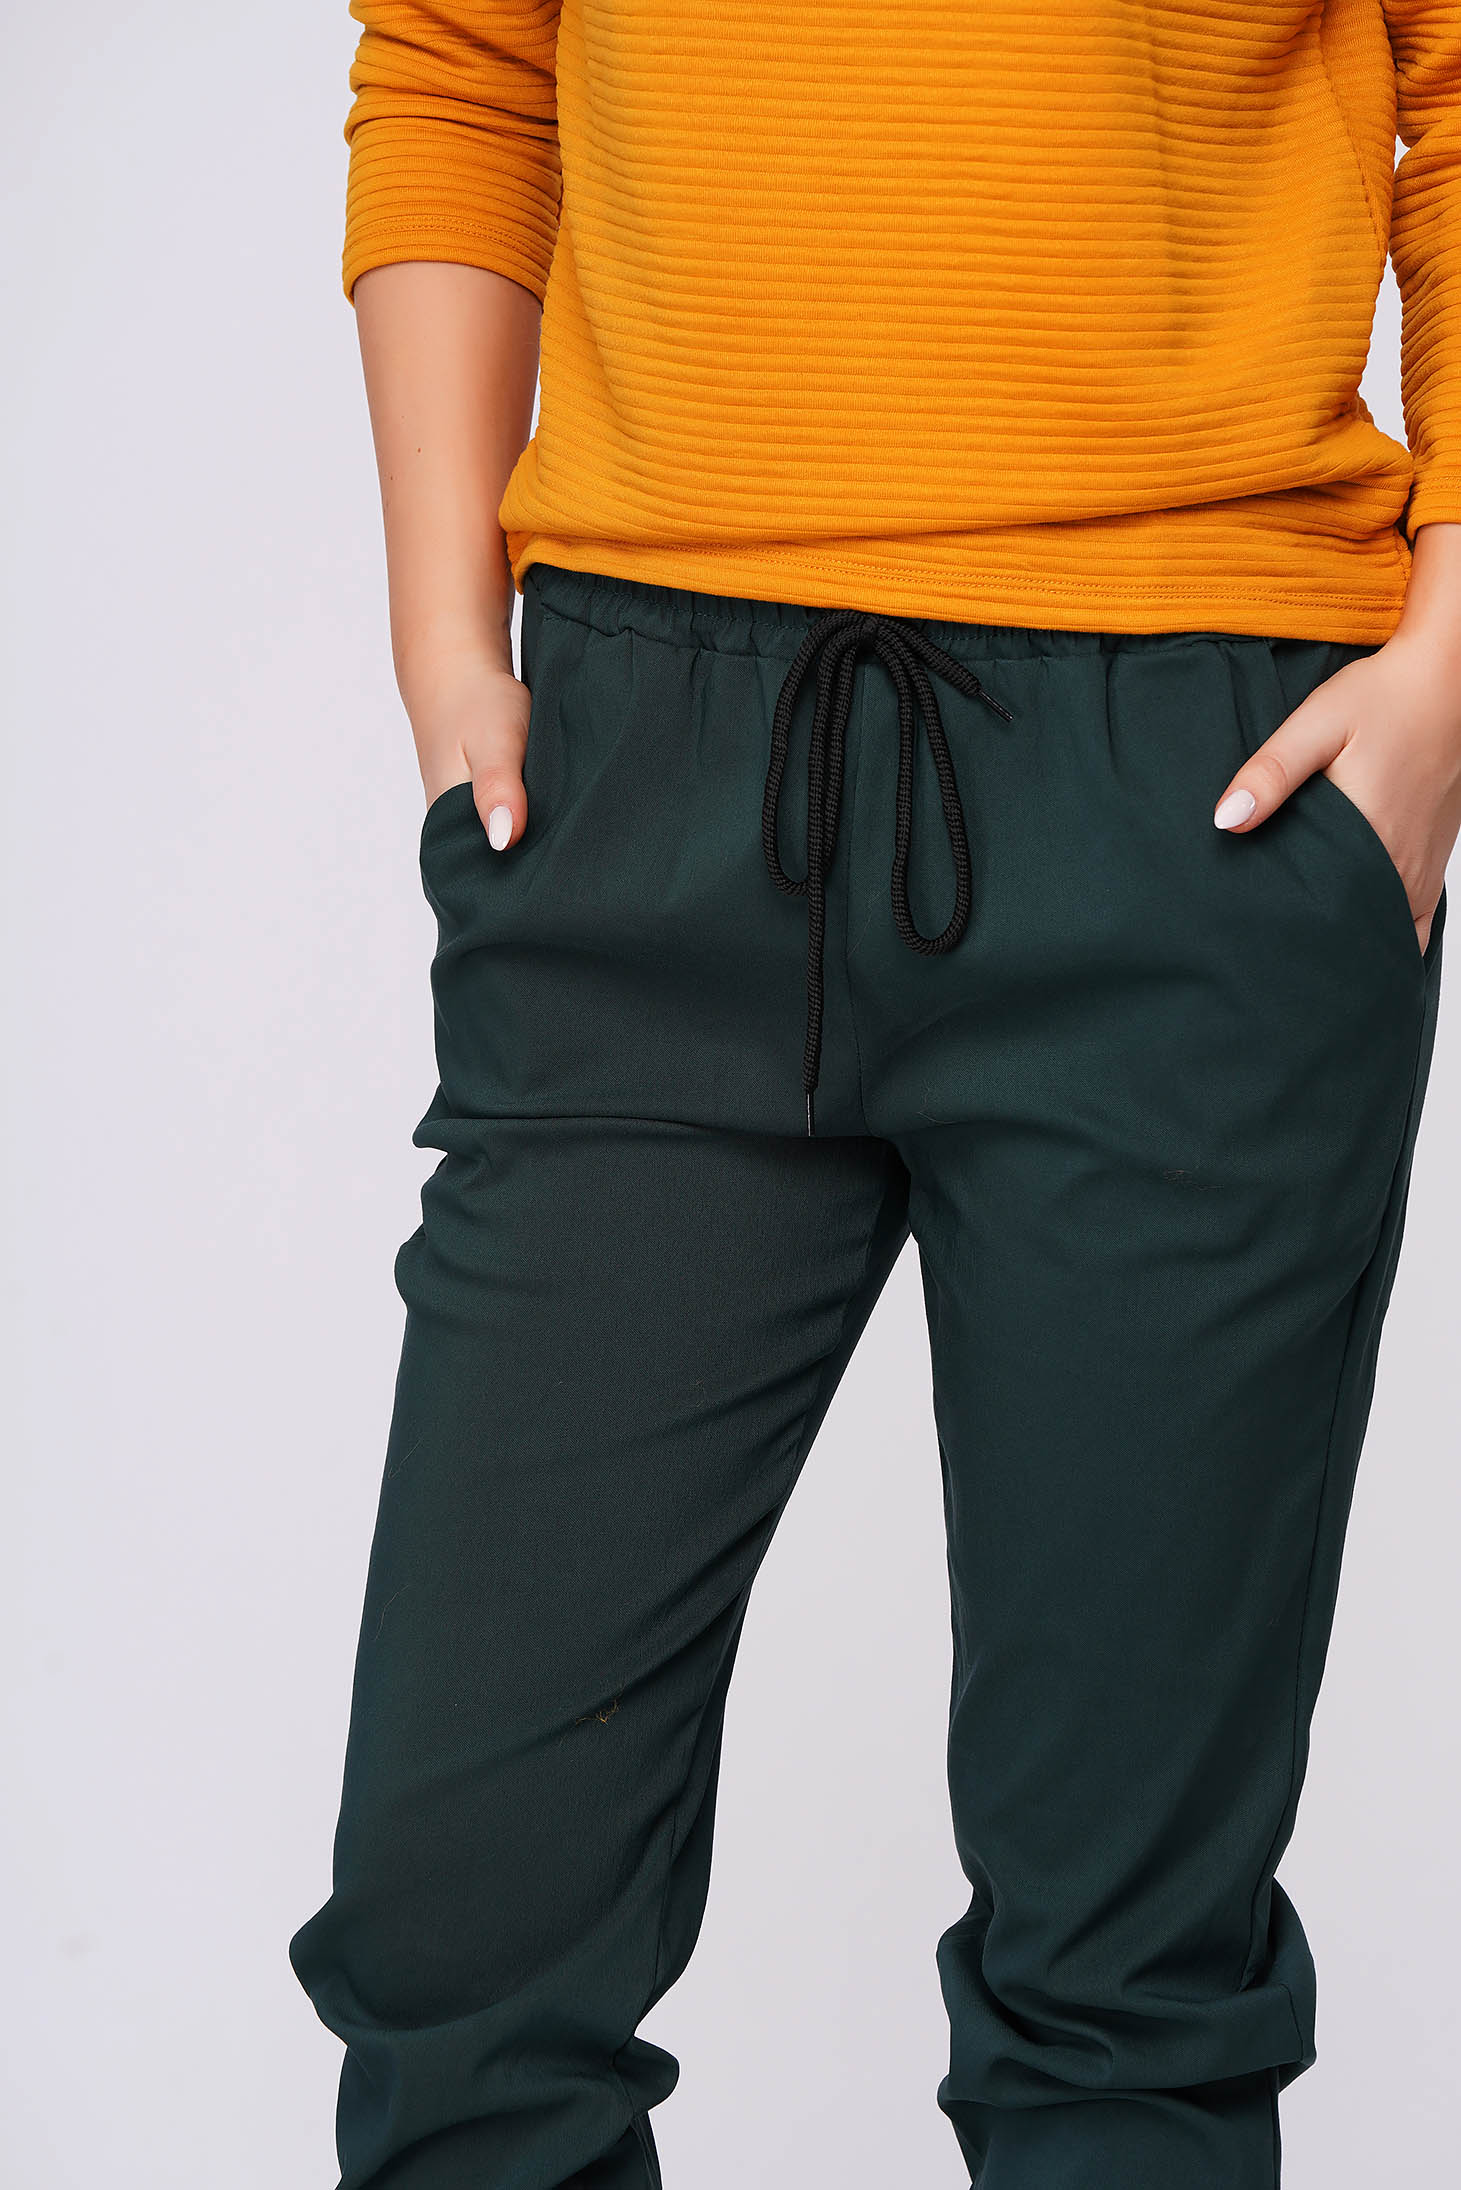 Green trousers casual with pockets with medium waist thin fabric